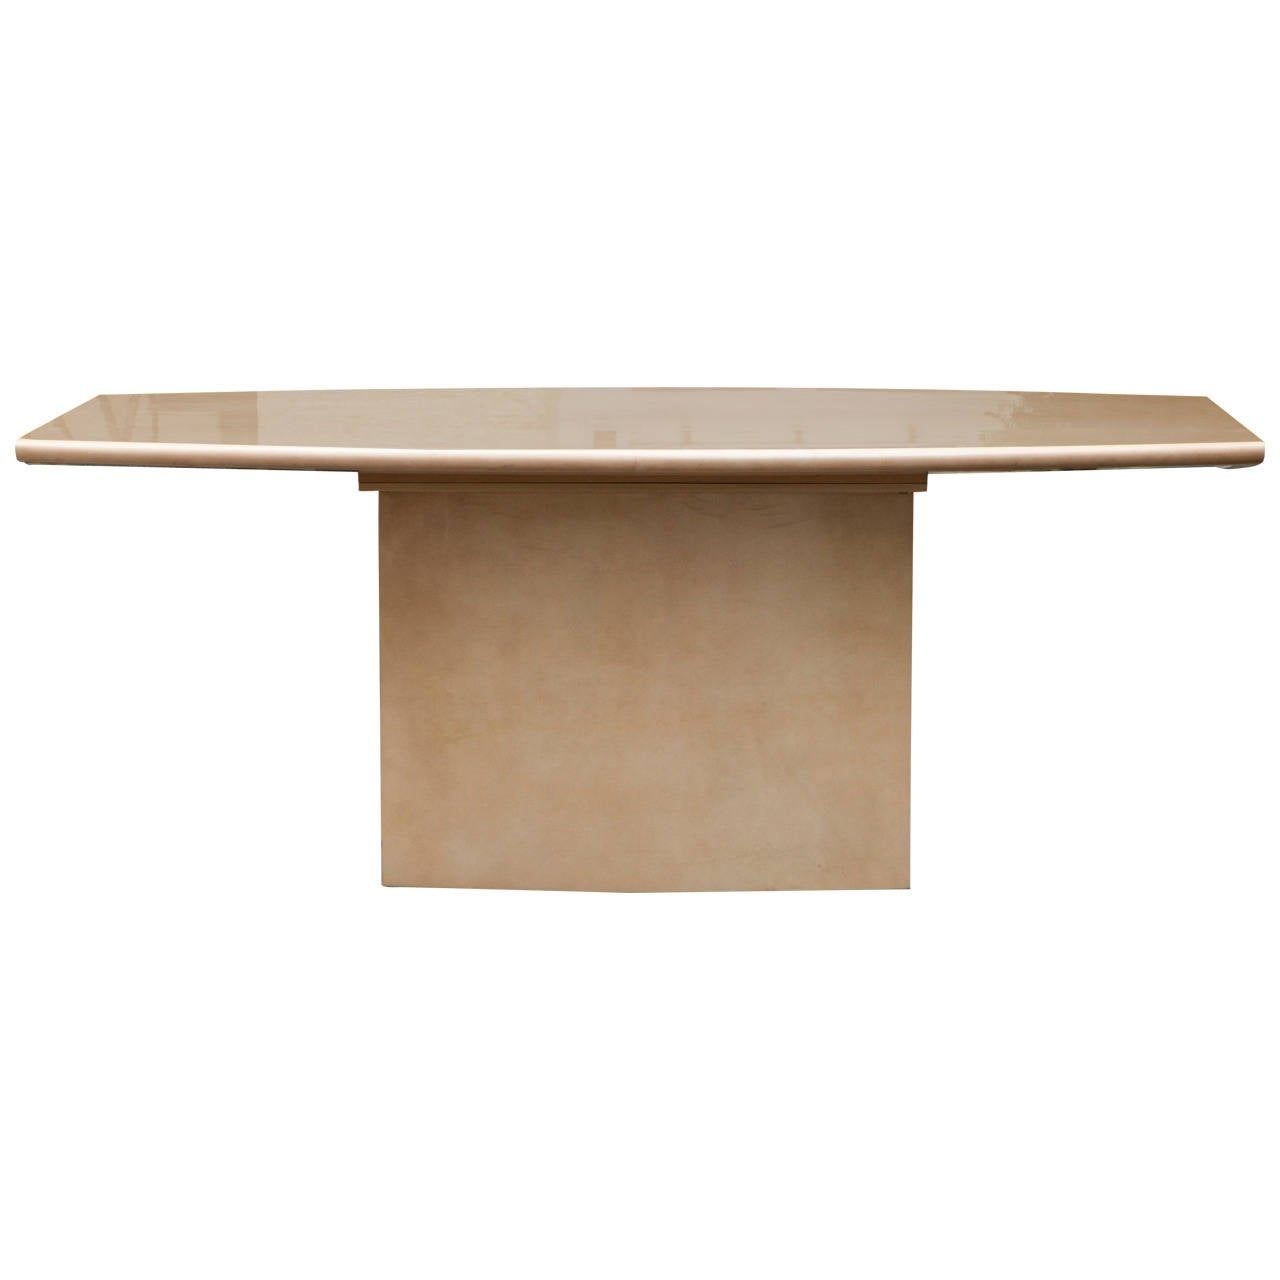 Aldo Tura Parchment Dining Table